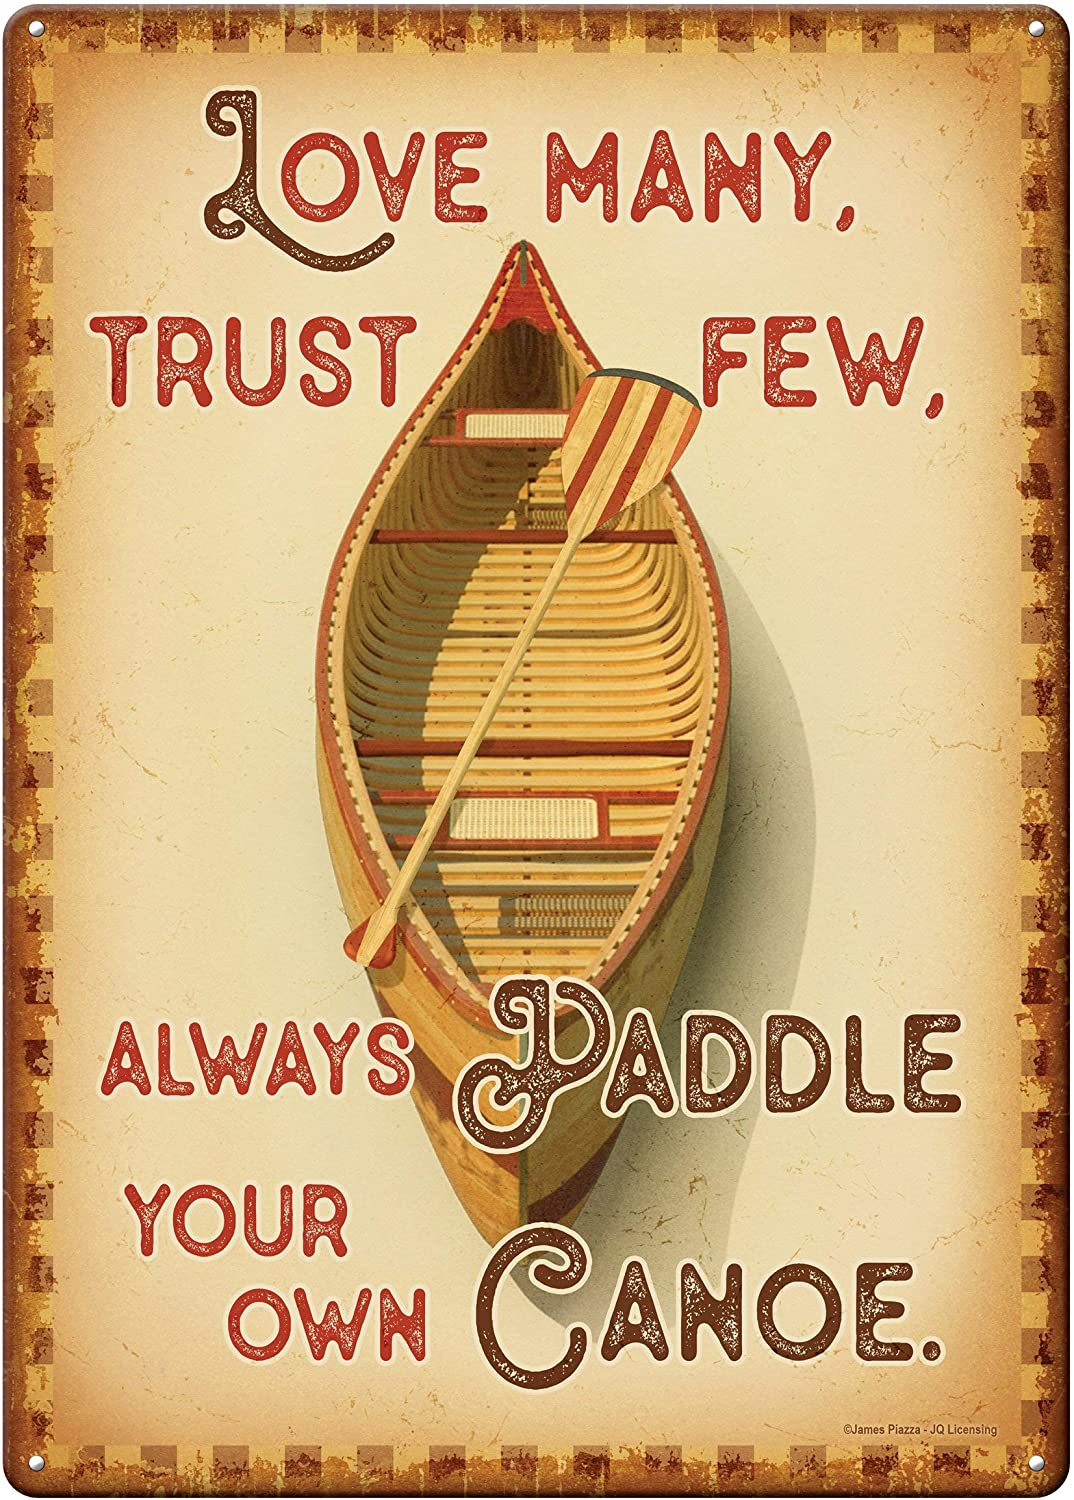 PAGAIXI Unique Metal Signs Vintage Man Cave - Love Many, Trust Few, Always Paddle Your Own Canoe Tin Sign 8